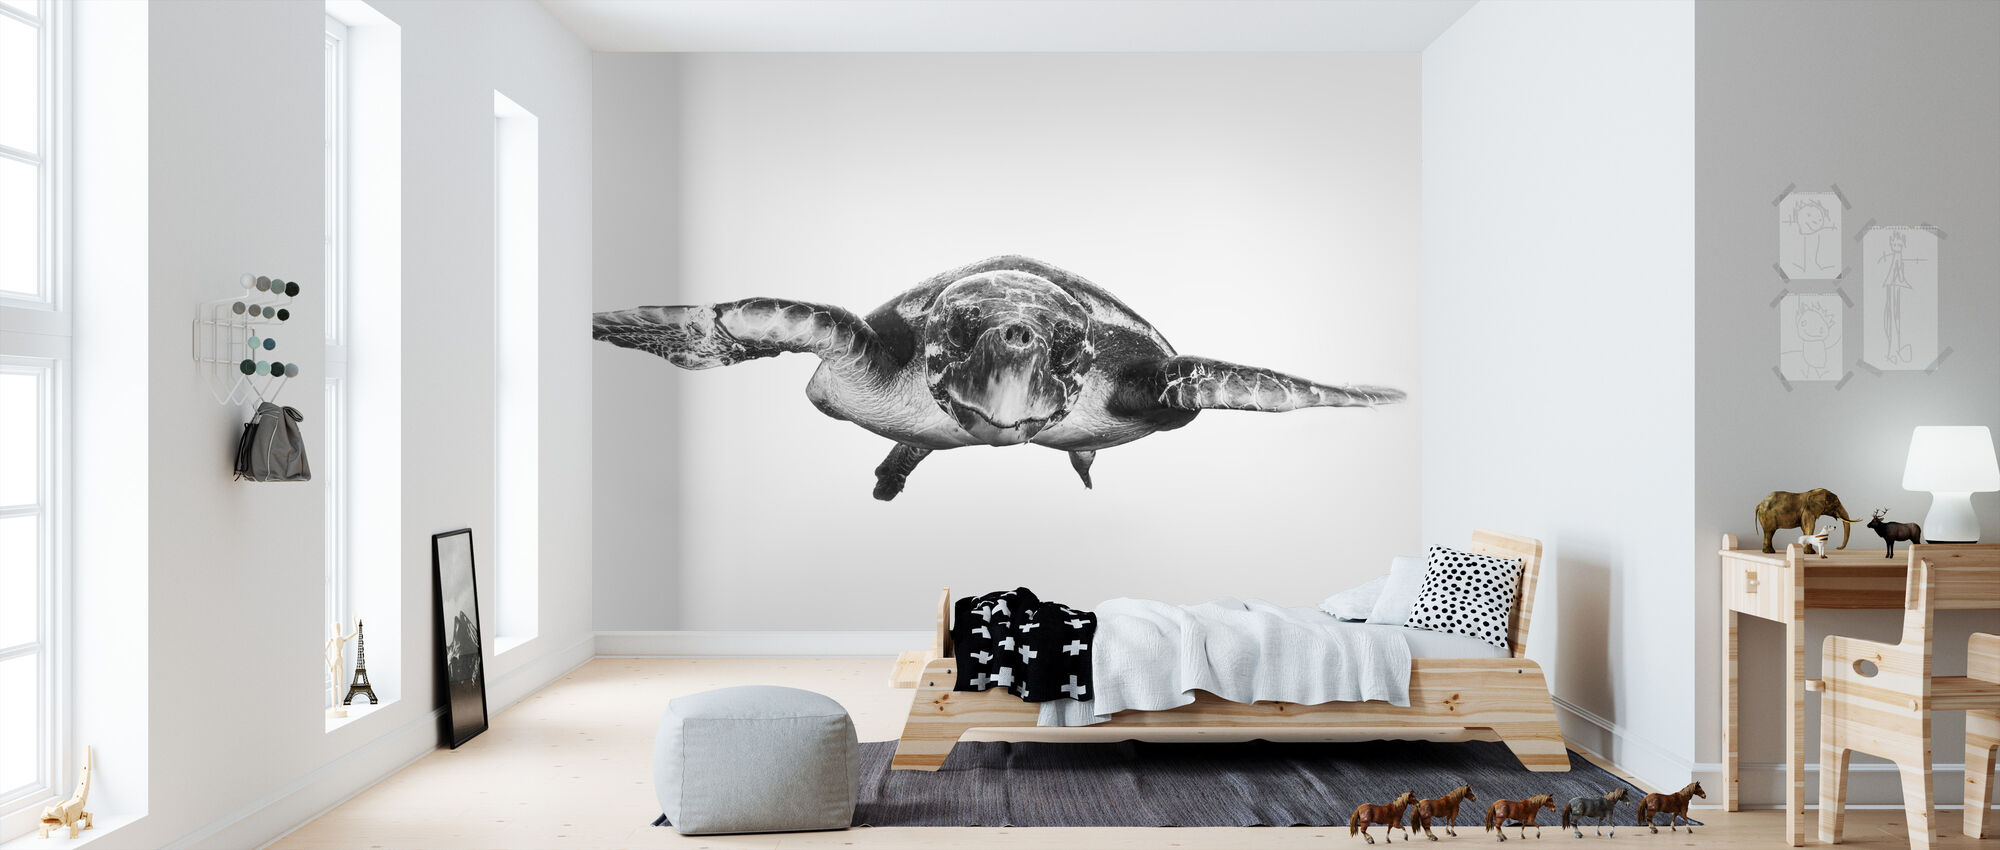 White and Turtle - Wallpaper - Kids Room